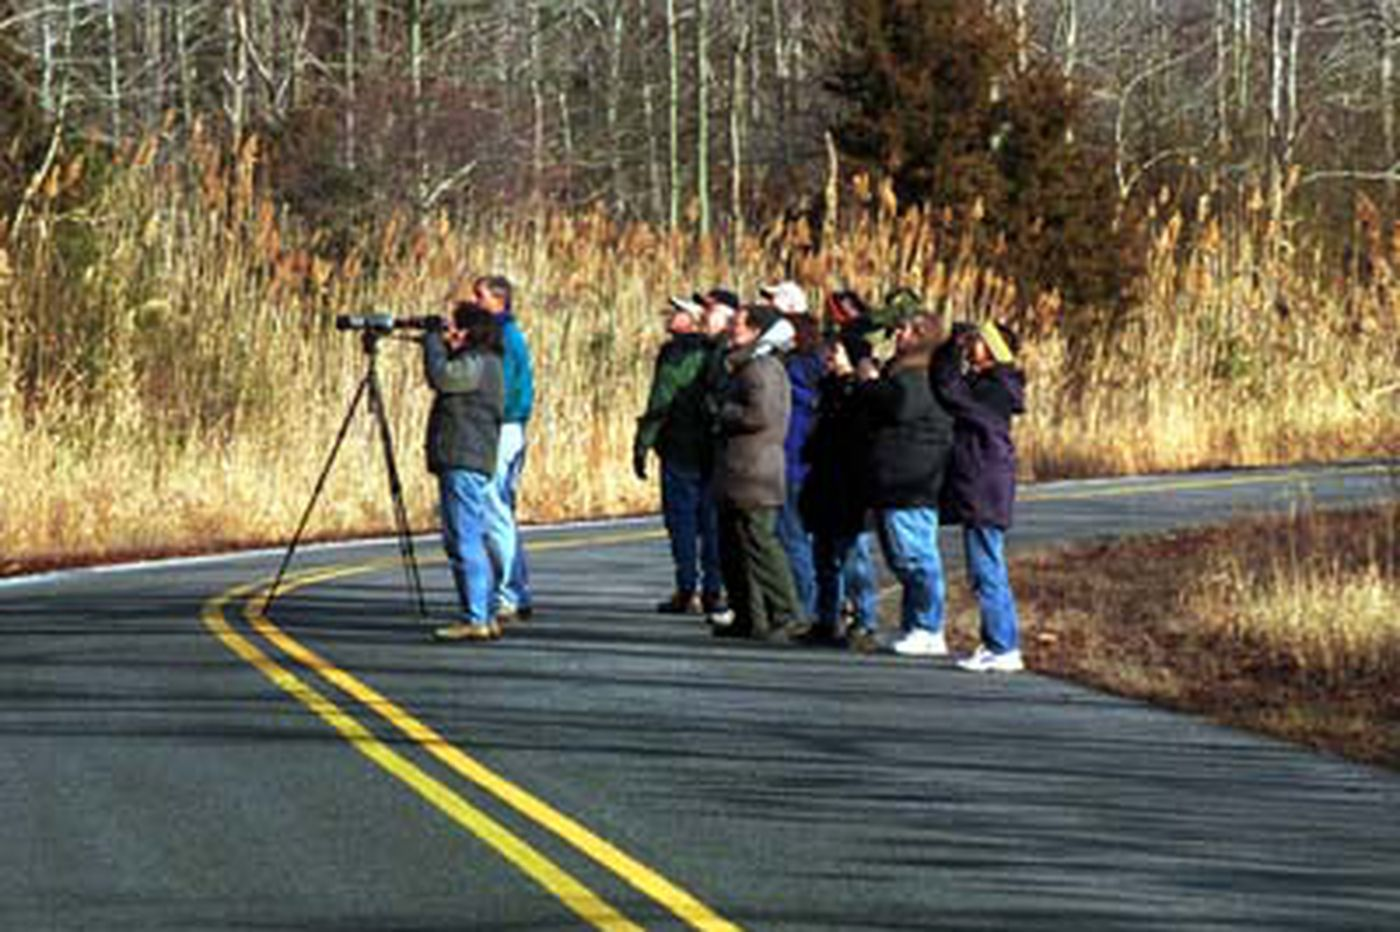 Daniel Rubin: Bird-watching as a contact sport